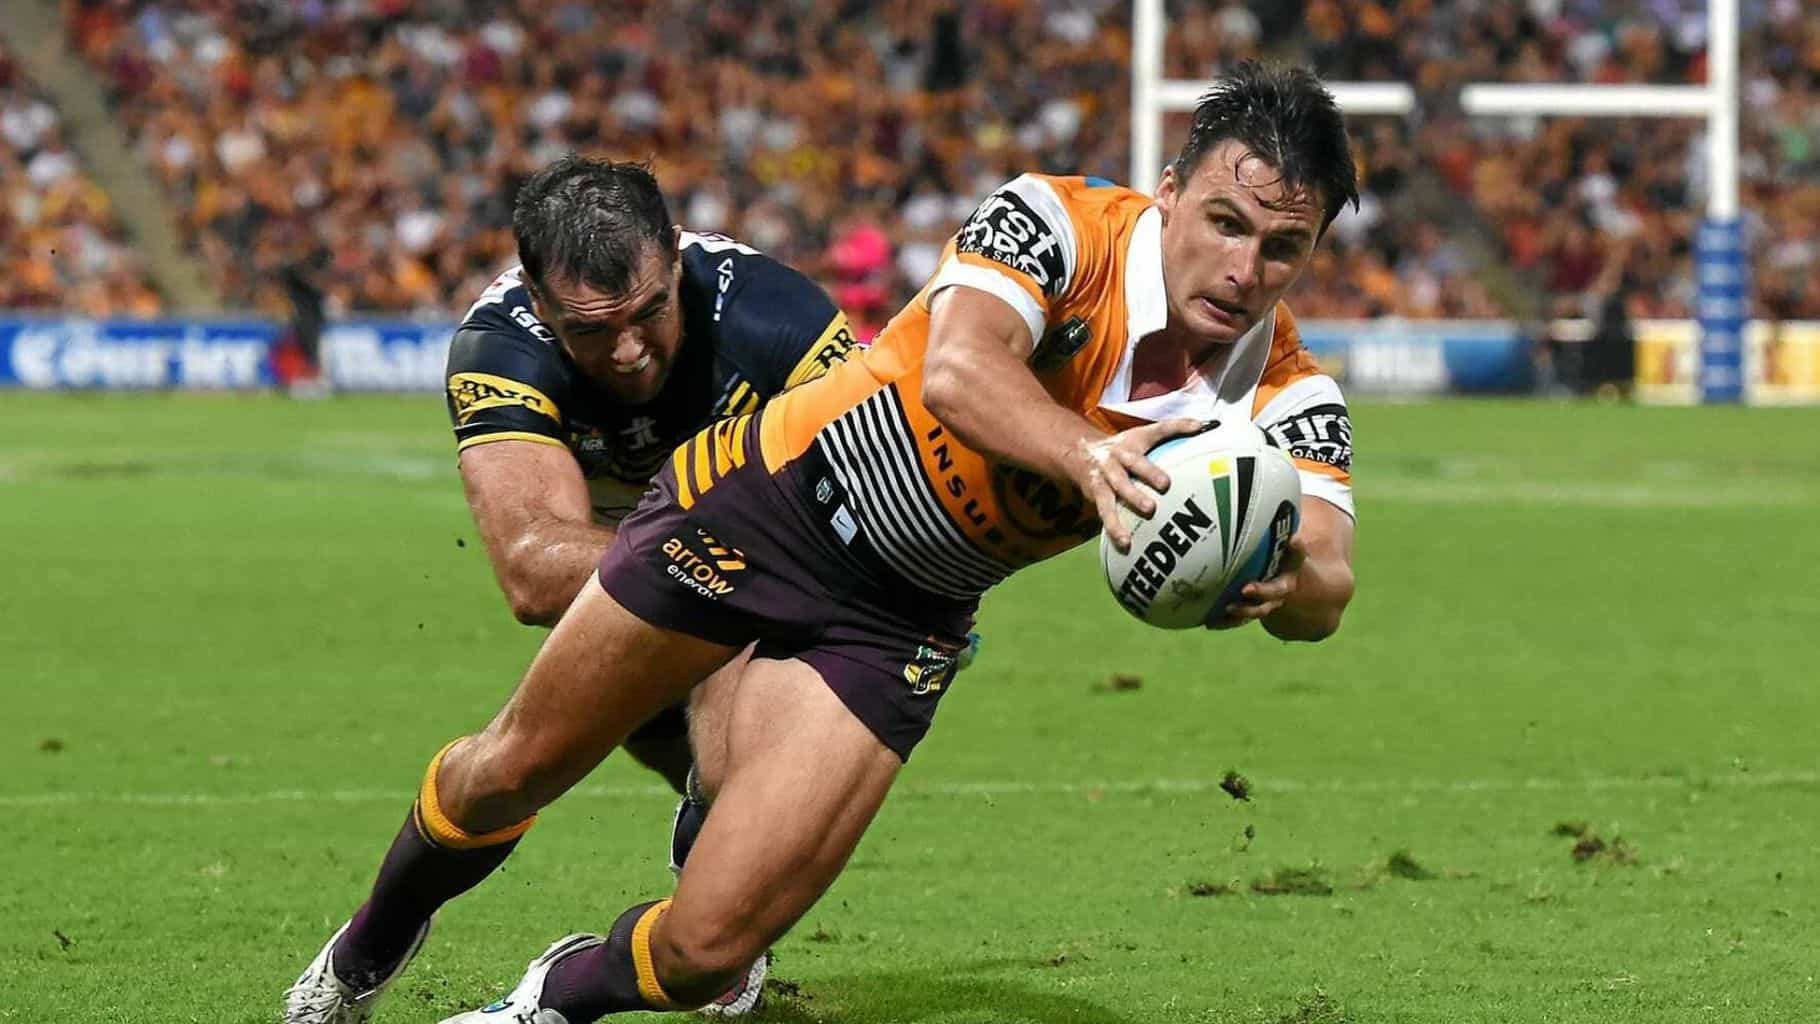 Former NRL and Super Rugby star signs with Wynnum Manly